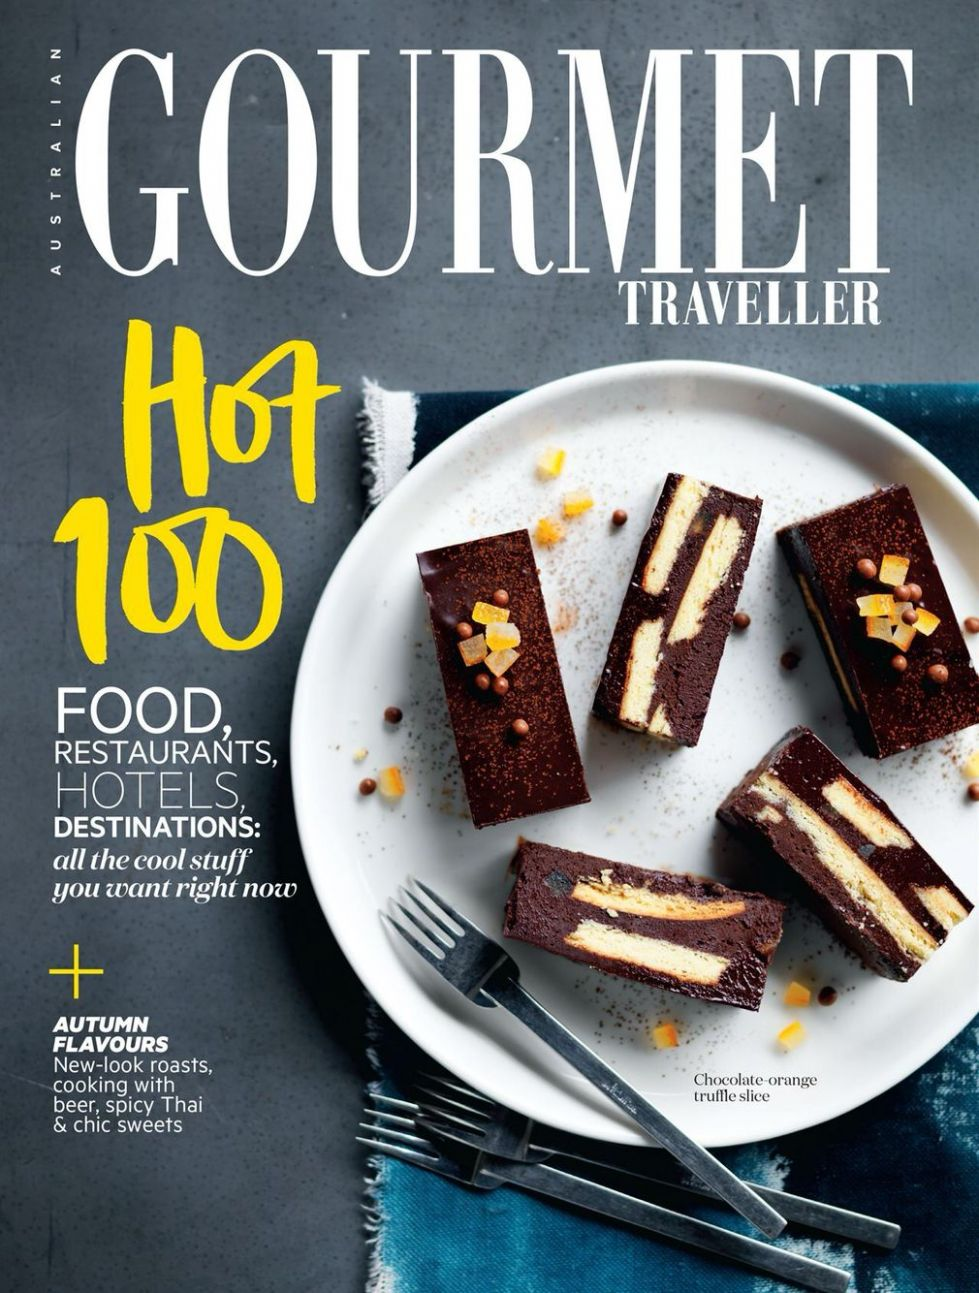 Gourmet Traveller Magazine cover | Food, Pear tarte tatin, Recipes - Dessert Recipes Gourmet Traveller